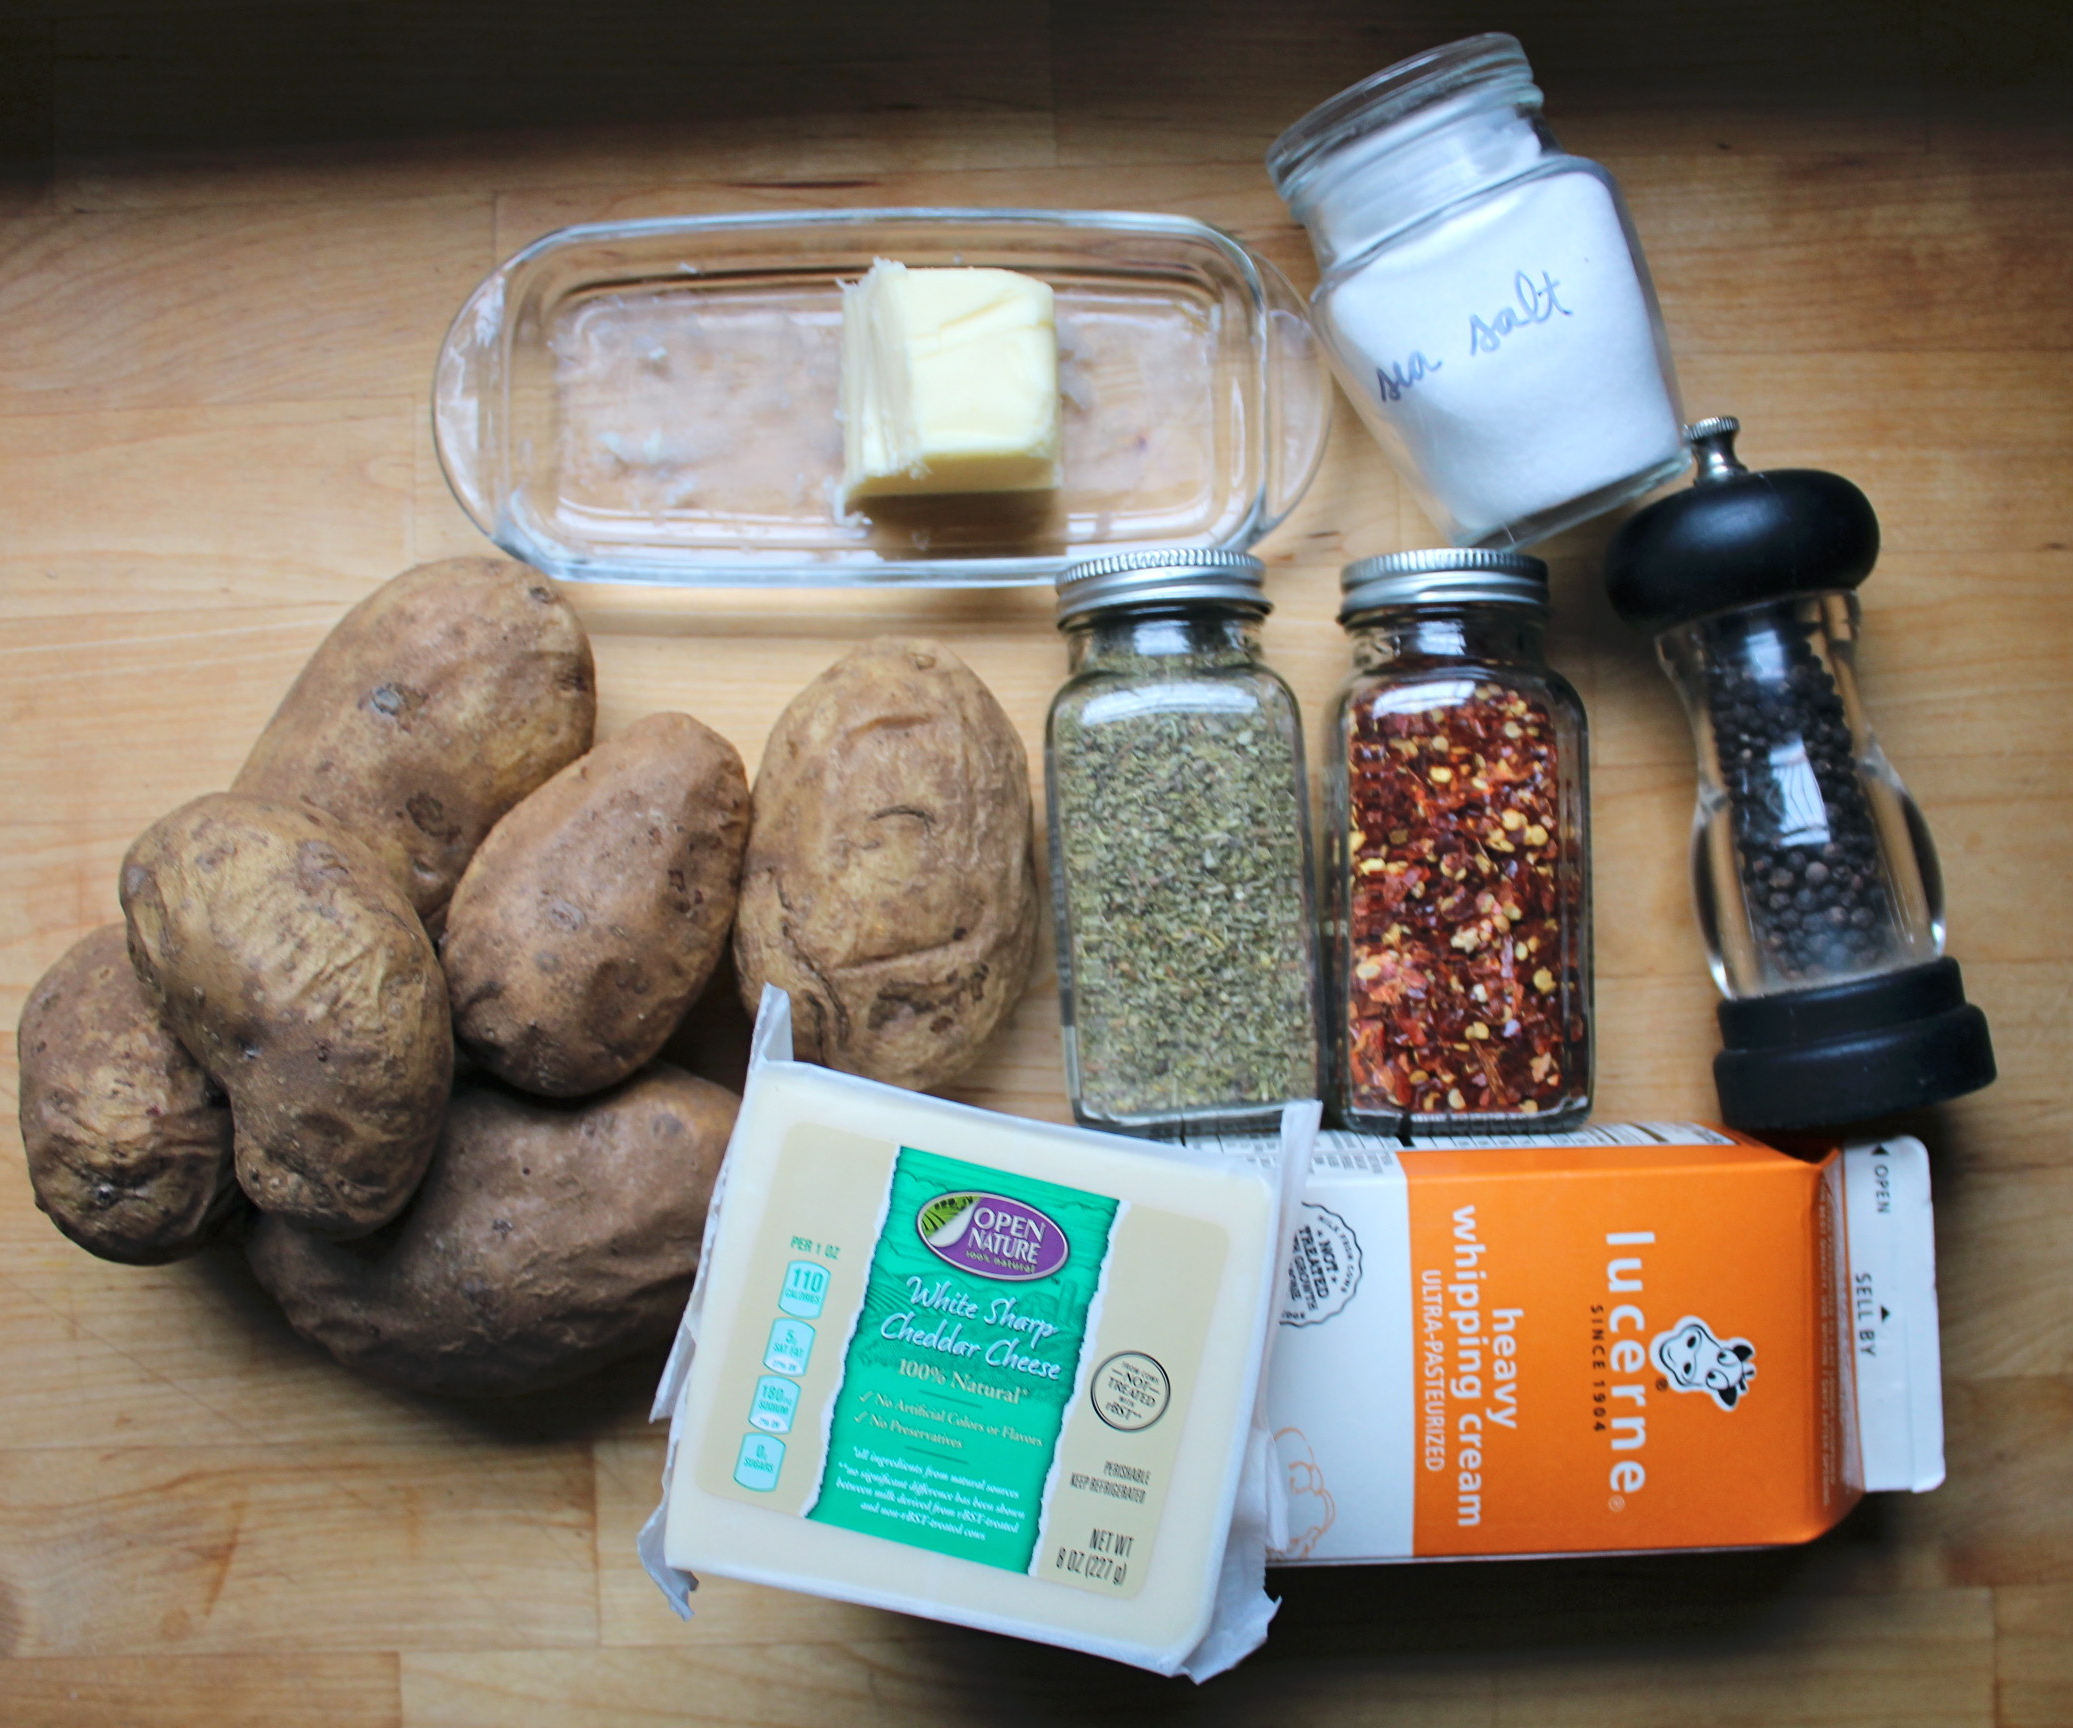 Picture of Ingredients + Cooking the Potatoes